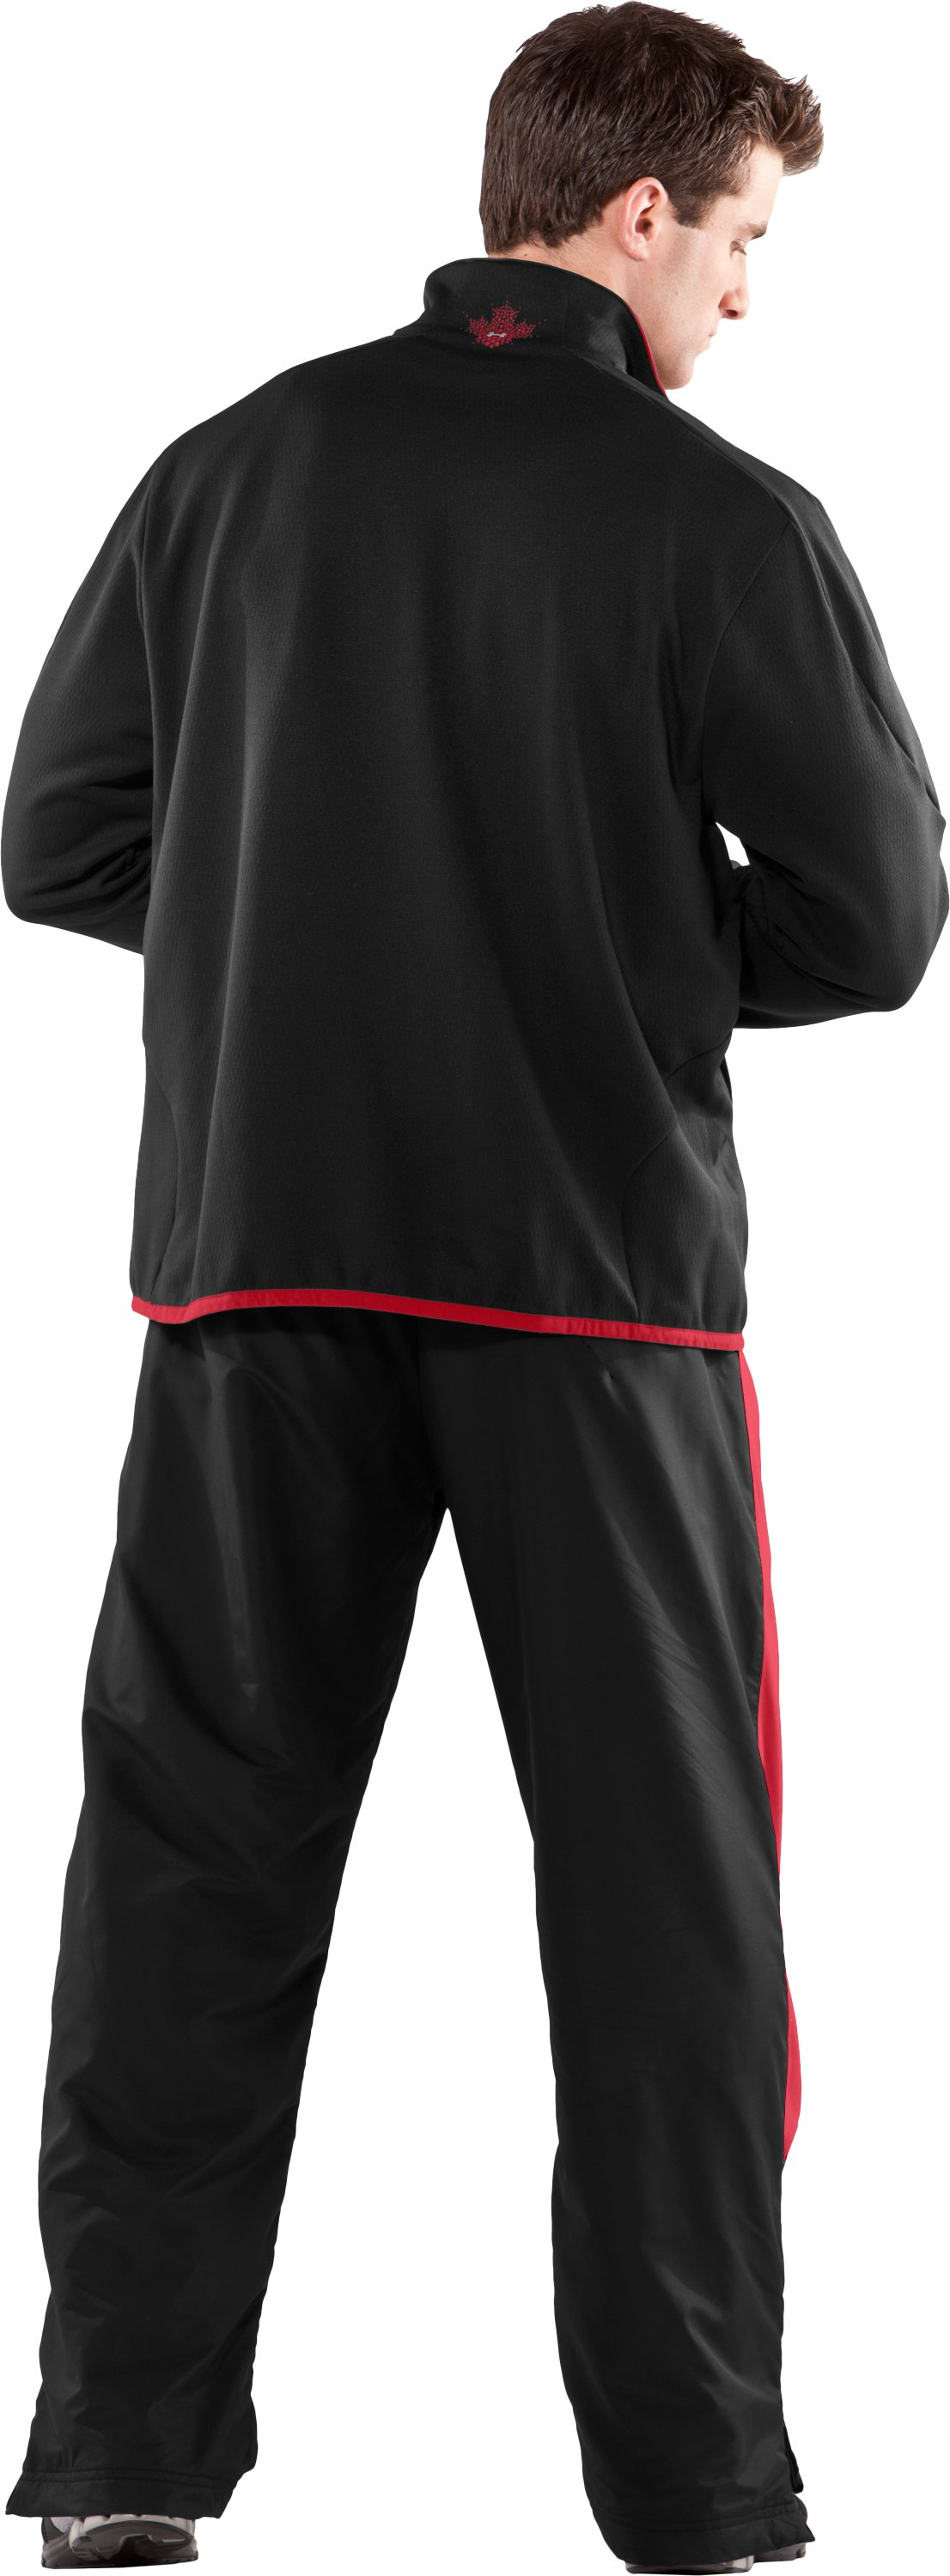 Men's Hockey ¼ Zip Microfleece, Black , Back